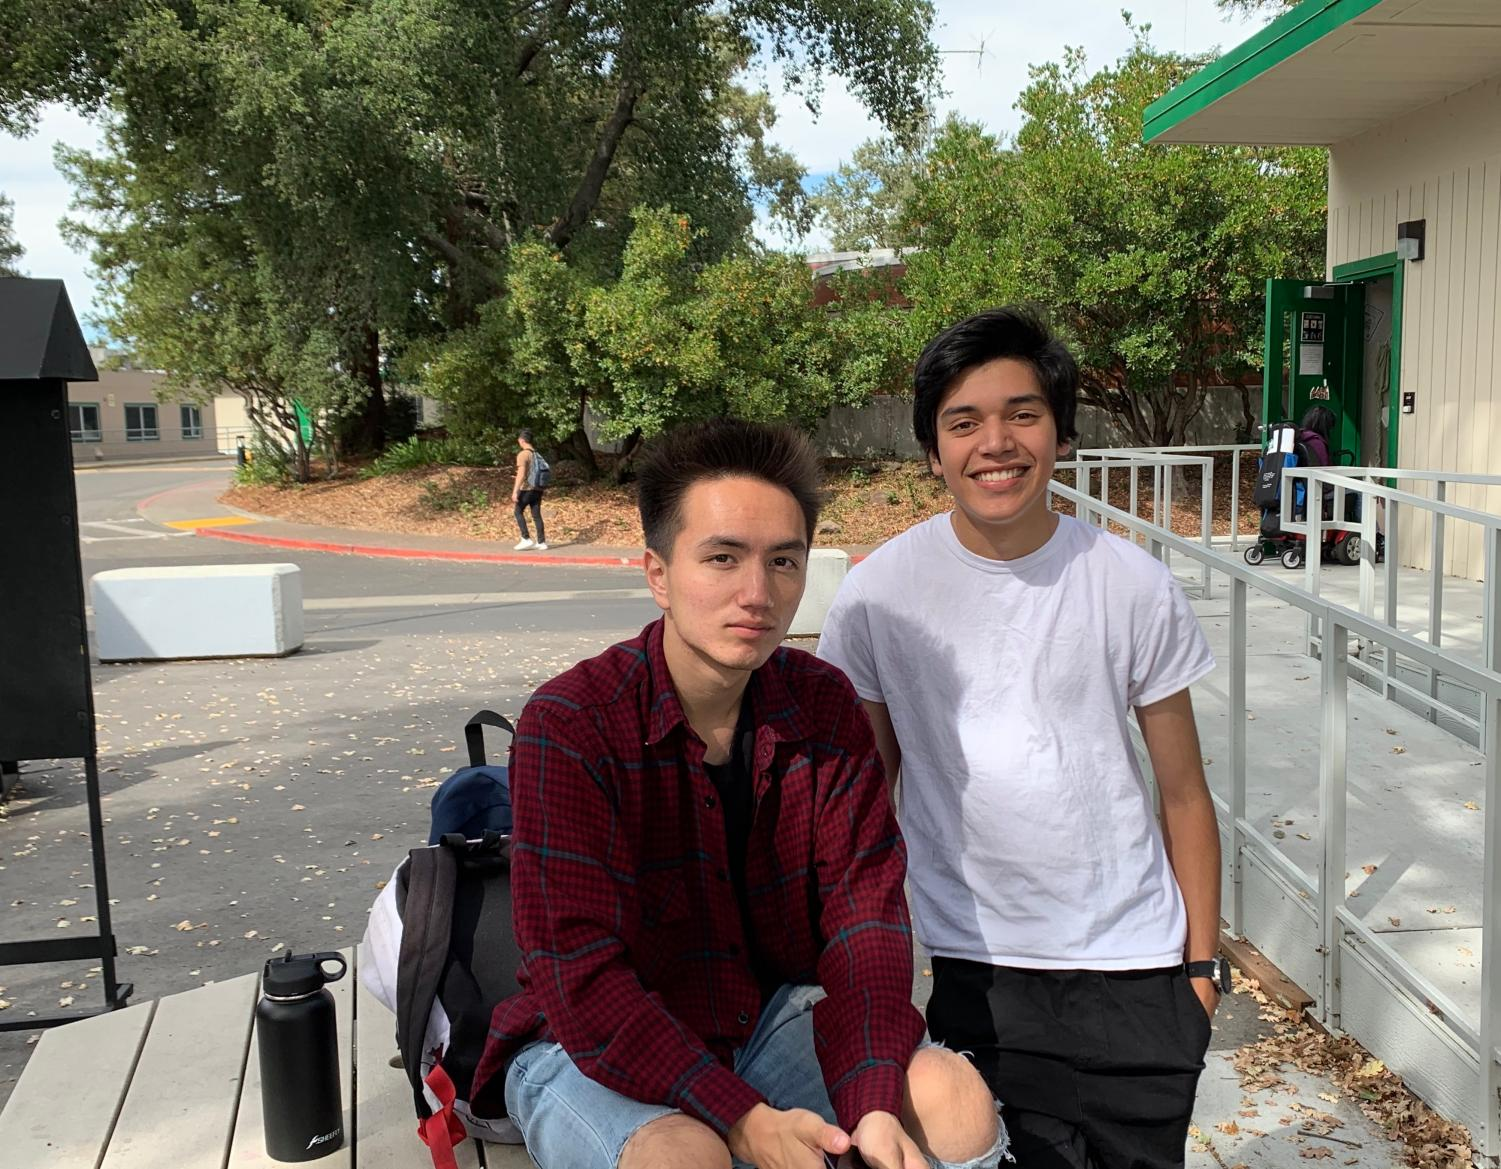 Though SRJC students Azulito Bernal, 19, and Aurelio Aguilar, 20, appreciate the day off of classes, they are critical of PG&E for the lack of warning and details surrounding the impending power outage.